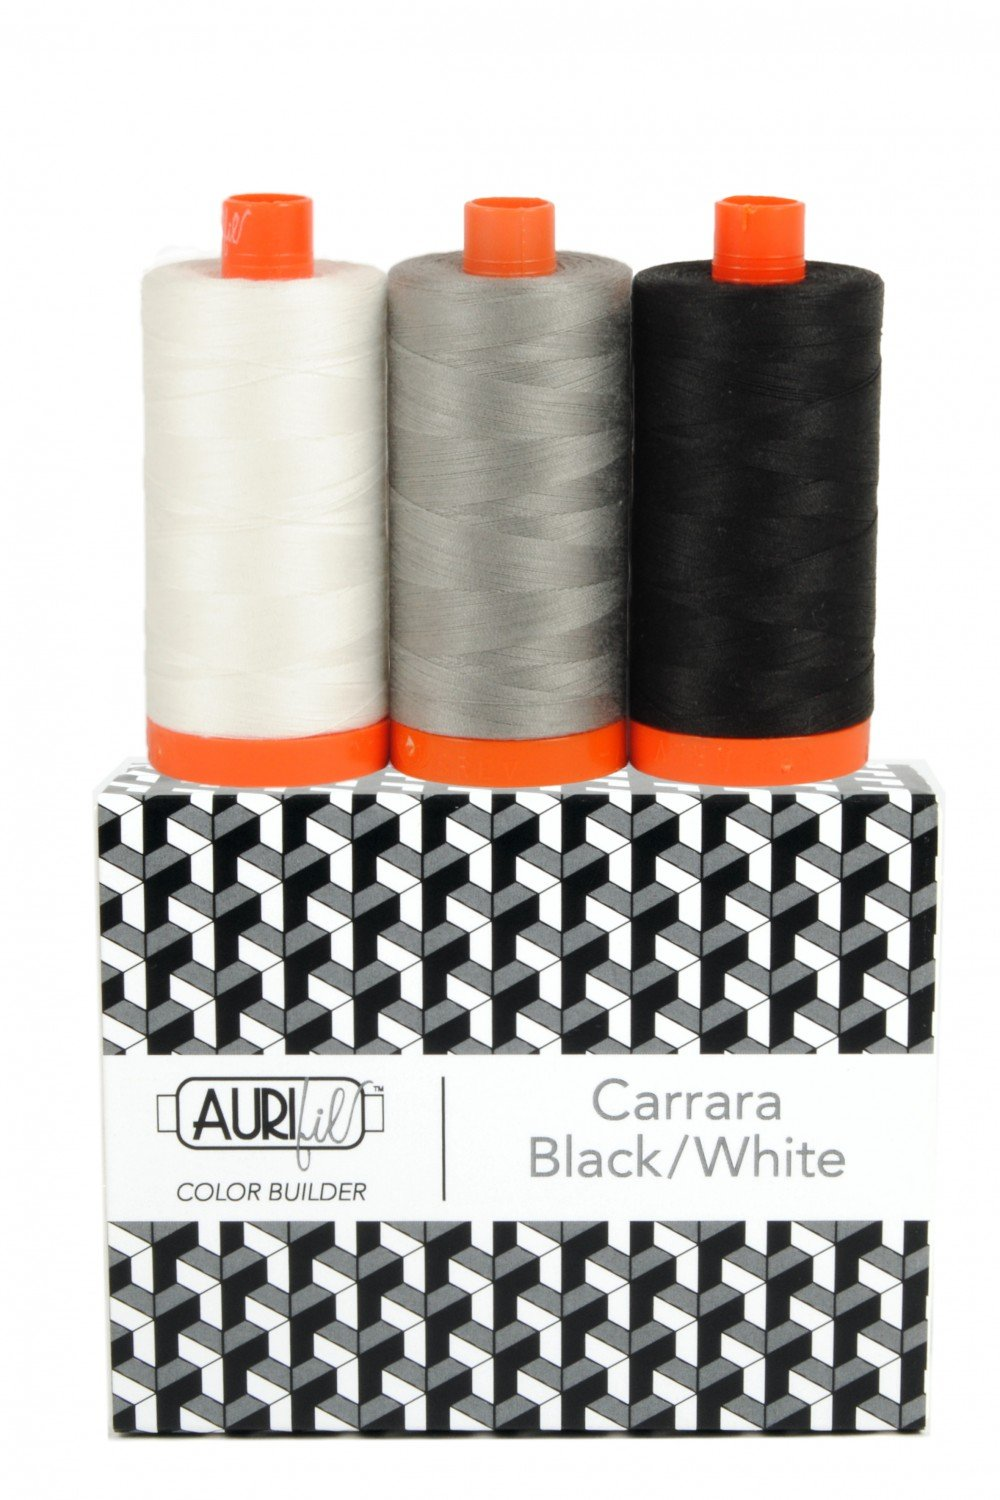 Aurifil Color Builder 3pc Set - Carrara Black/White